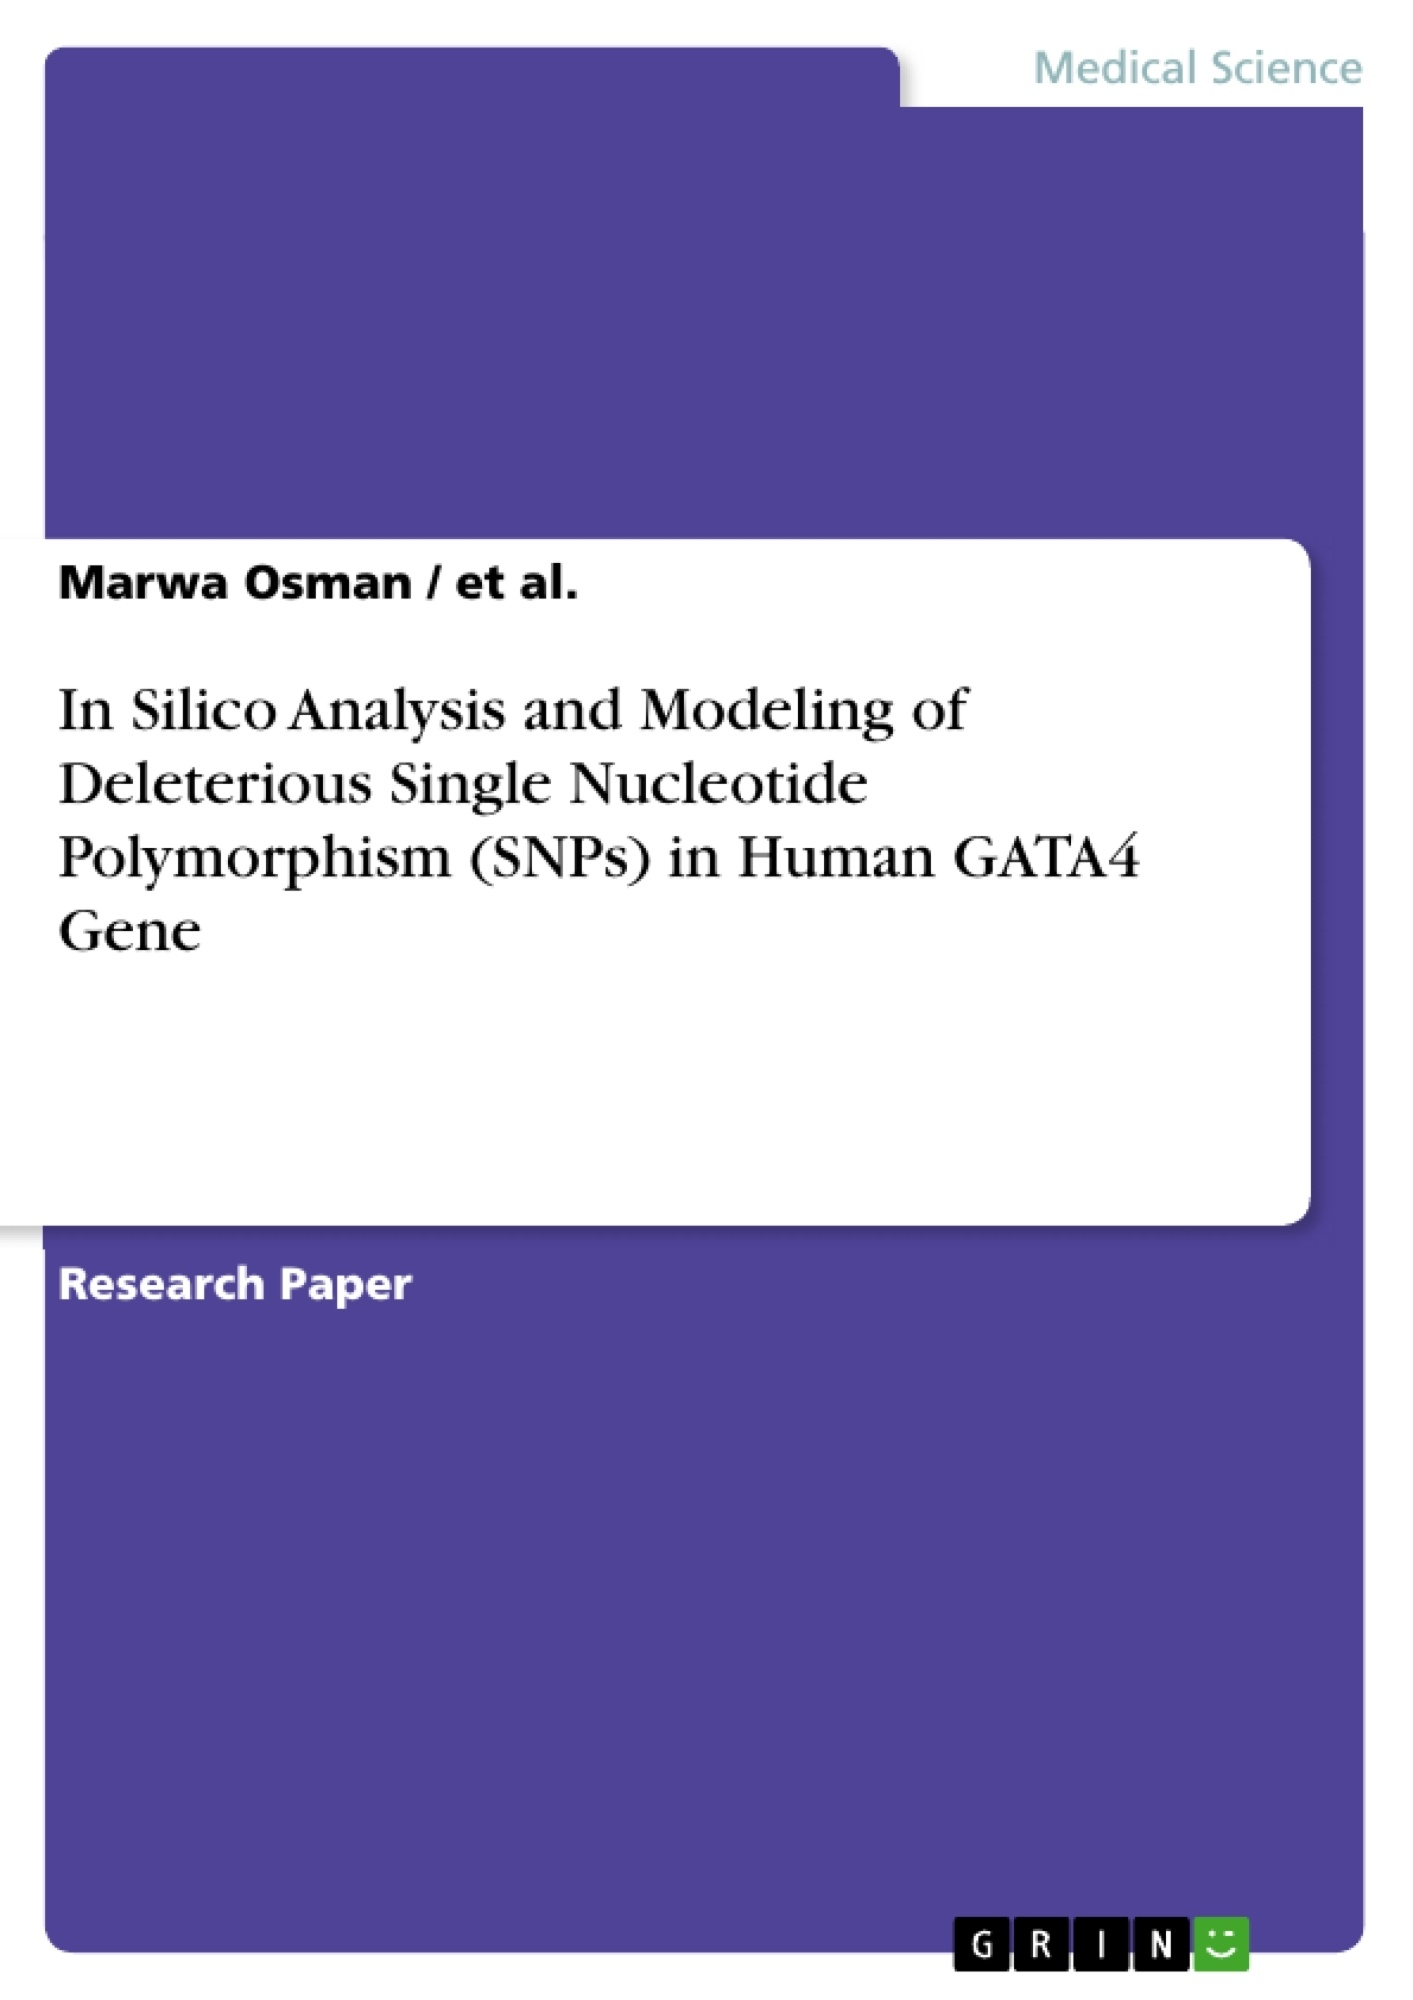 Title: In Silico Analysis and Modeling of Deleterious Single Nucleotide Polymorphism (SNPs) in Human GATA4 Gene